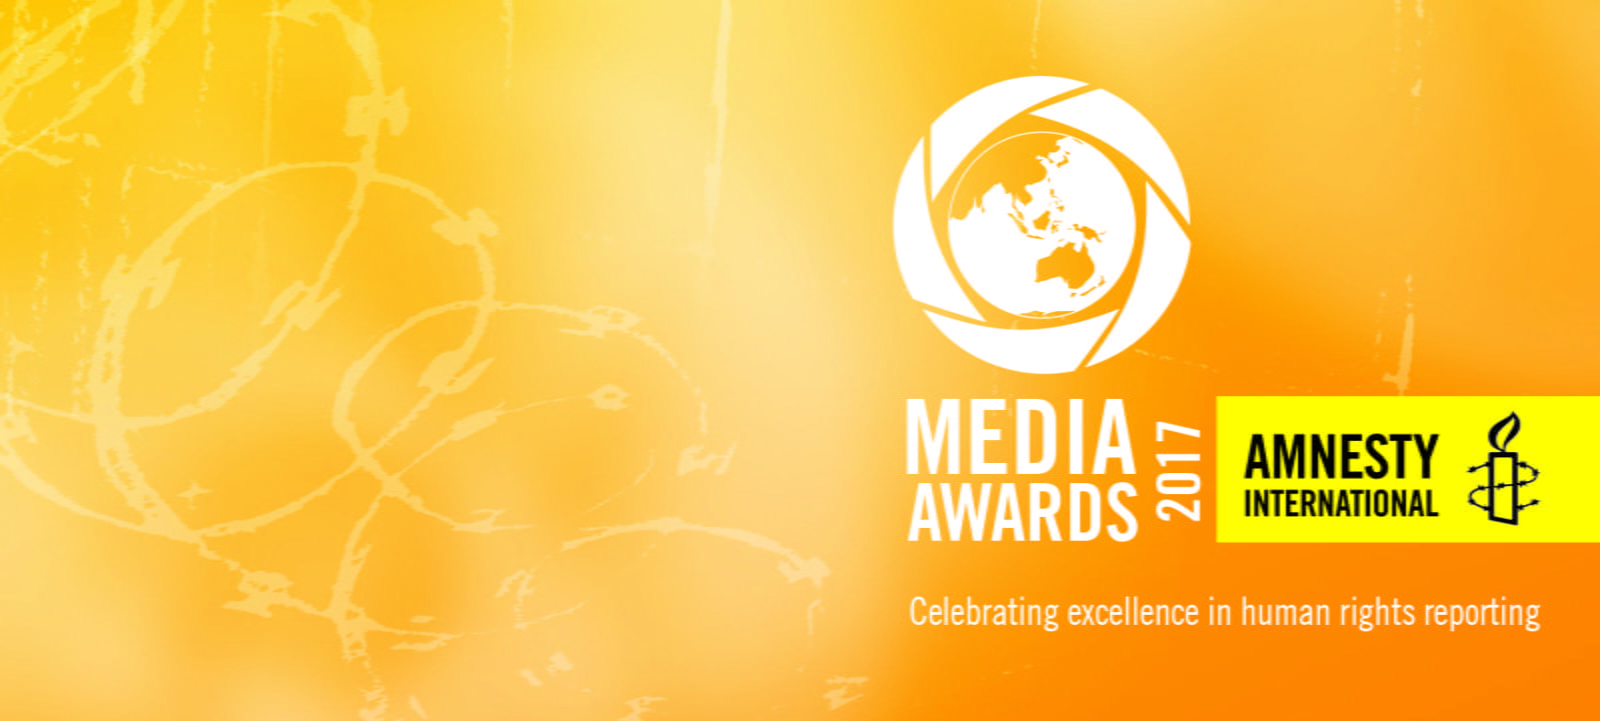 Amnesty Media Awards 2017 logo on an orange background with the words 'Media Awards 2017: Celebrating excellence in human rights reporting